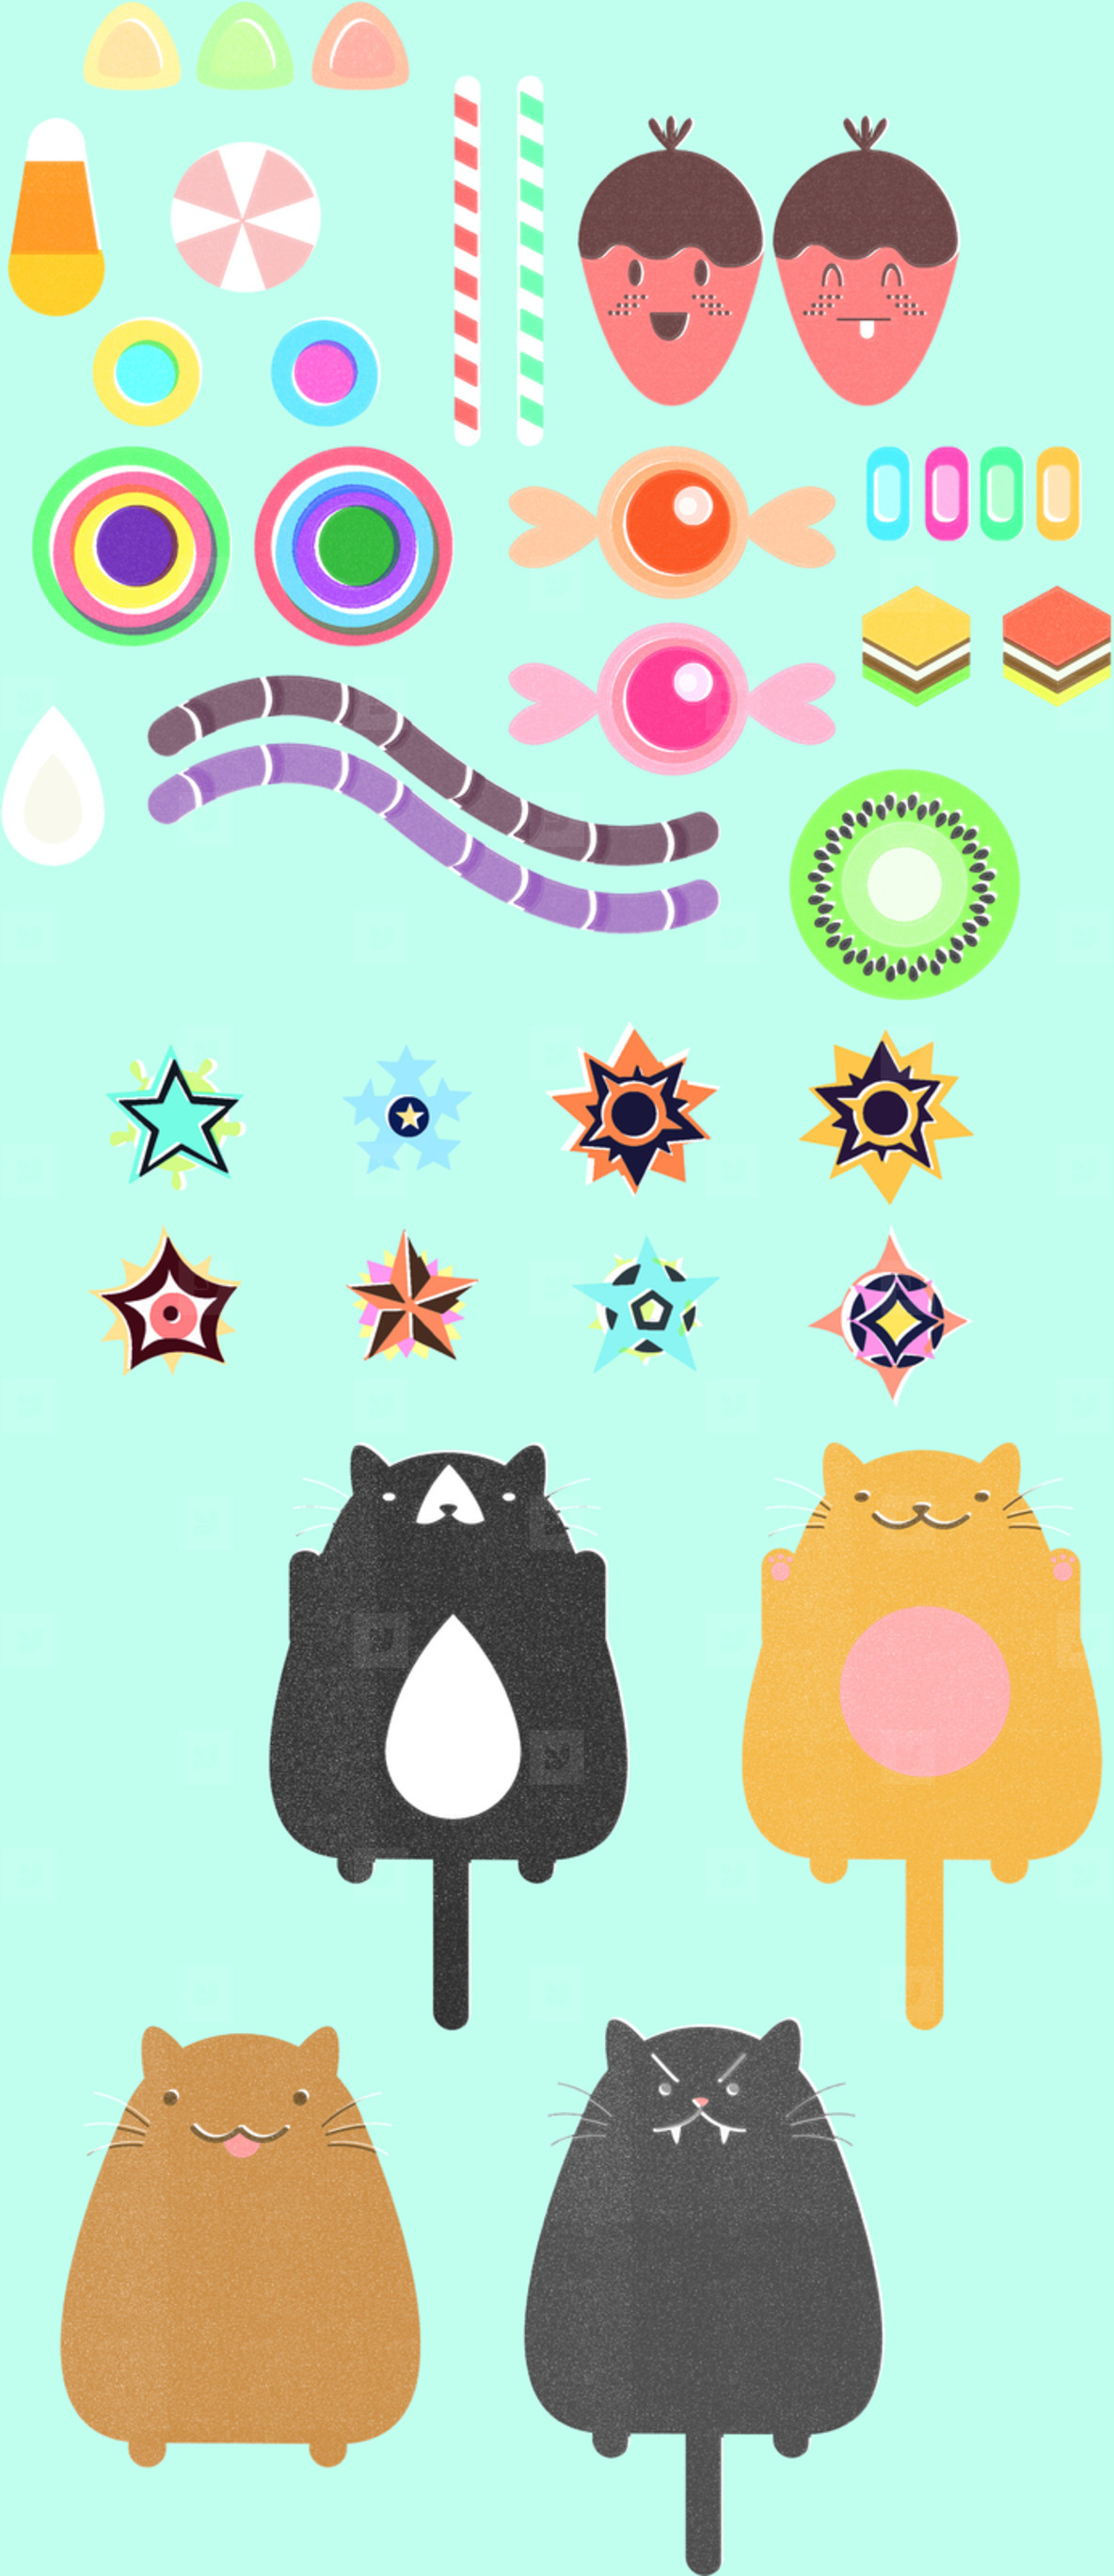 Cute and sweet bitmap elements